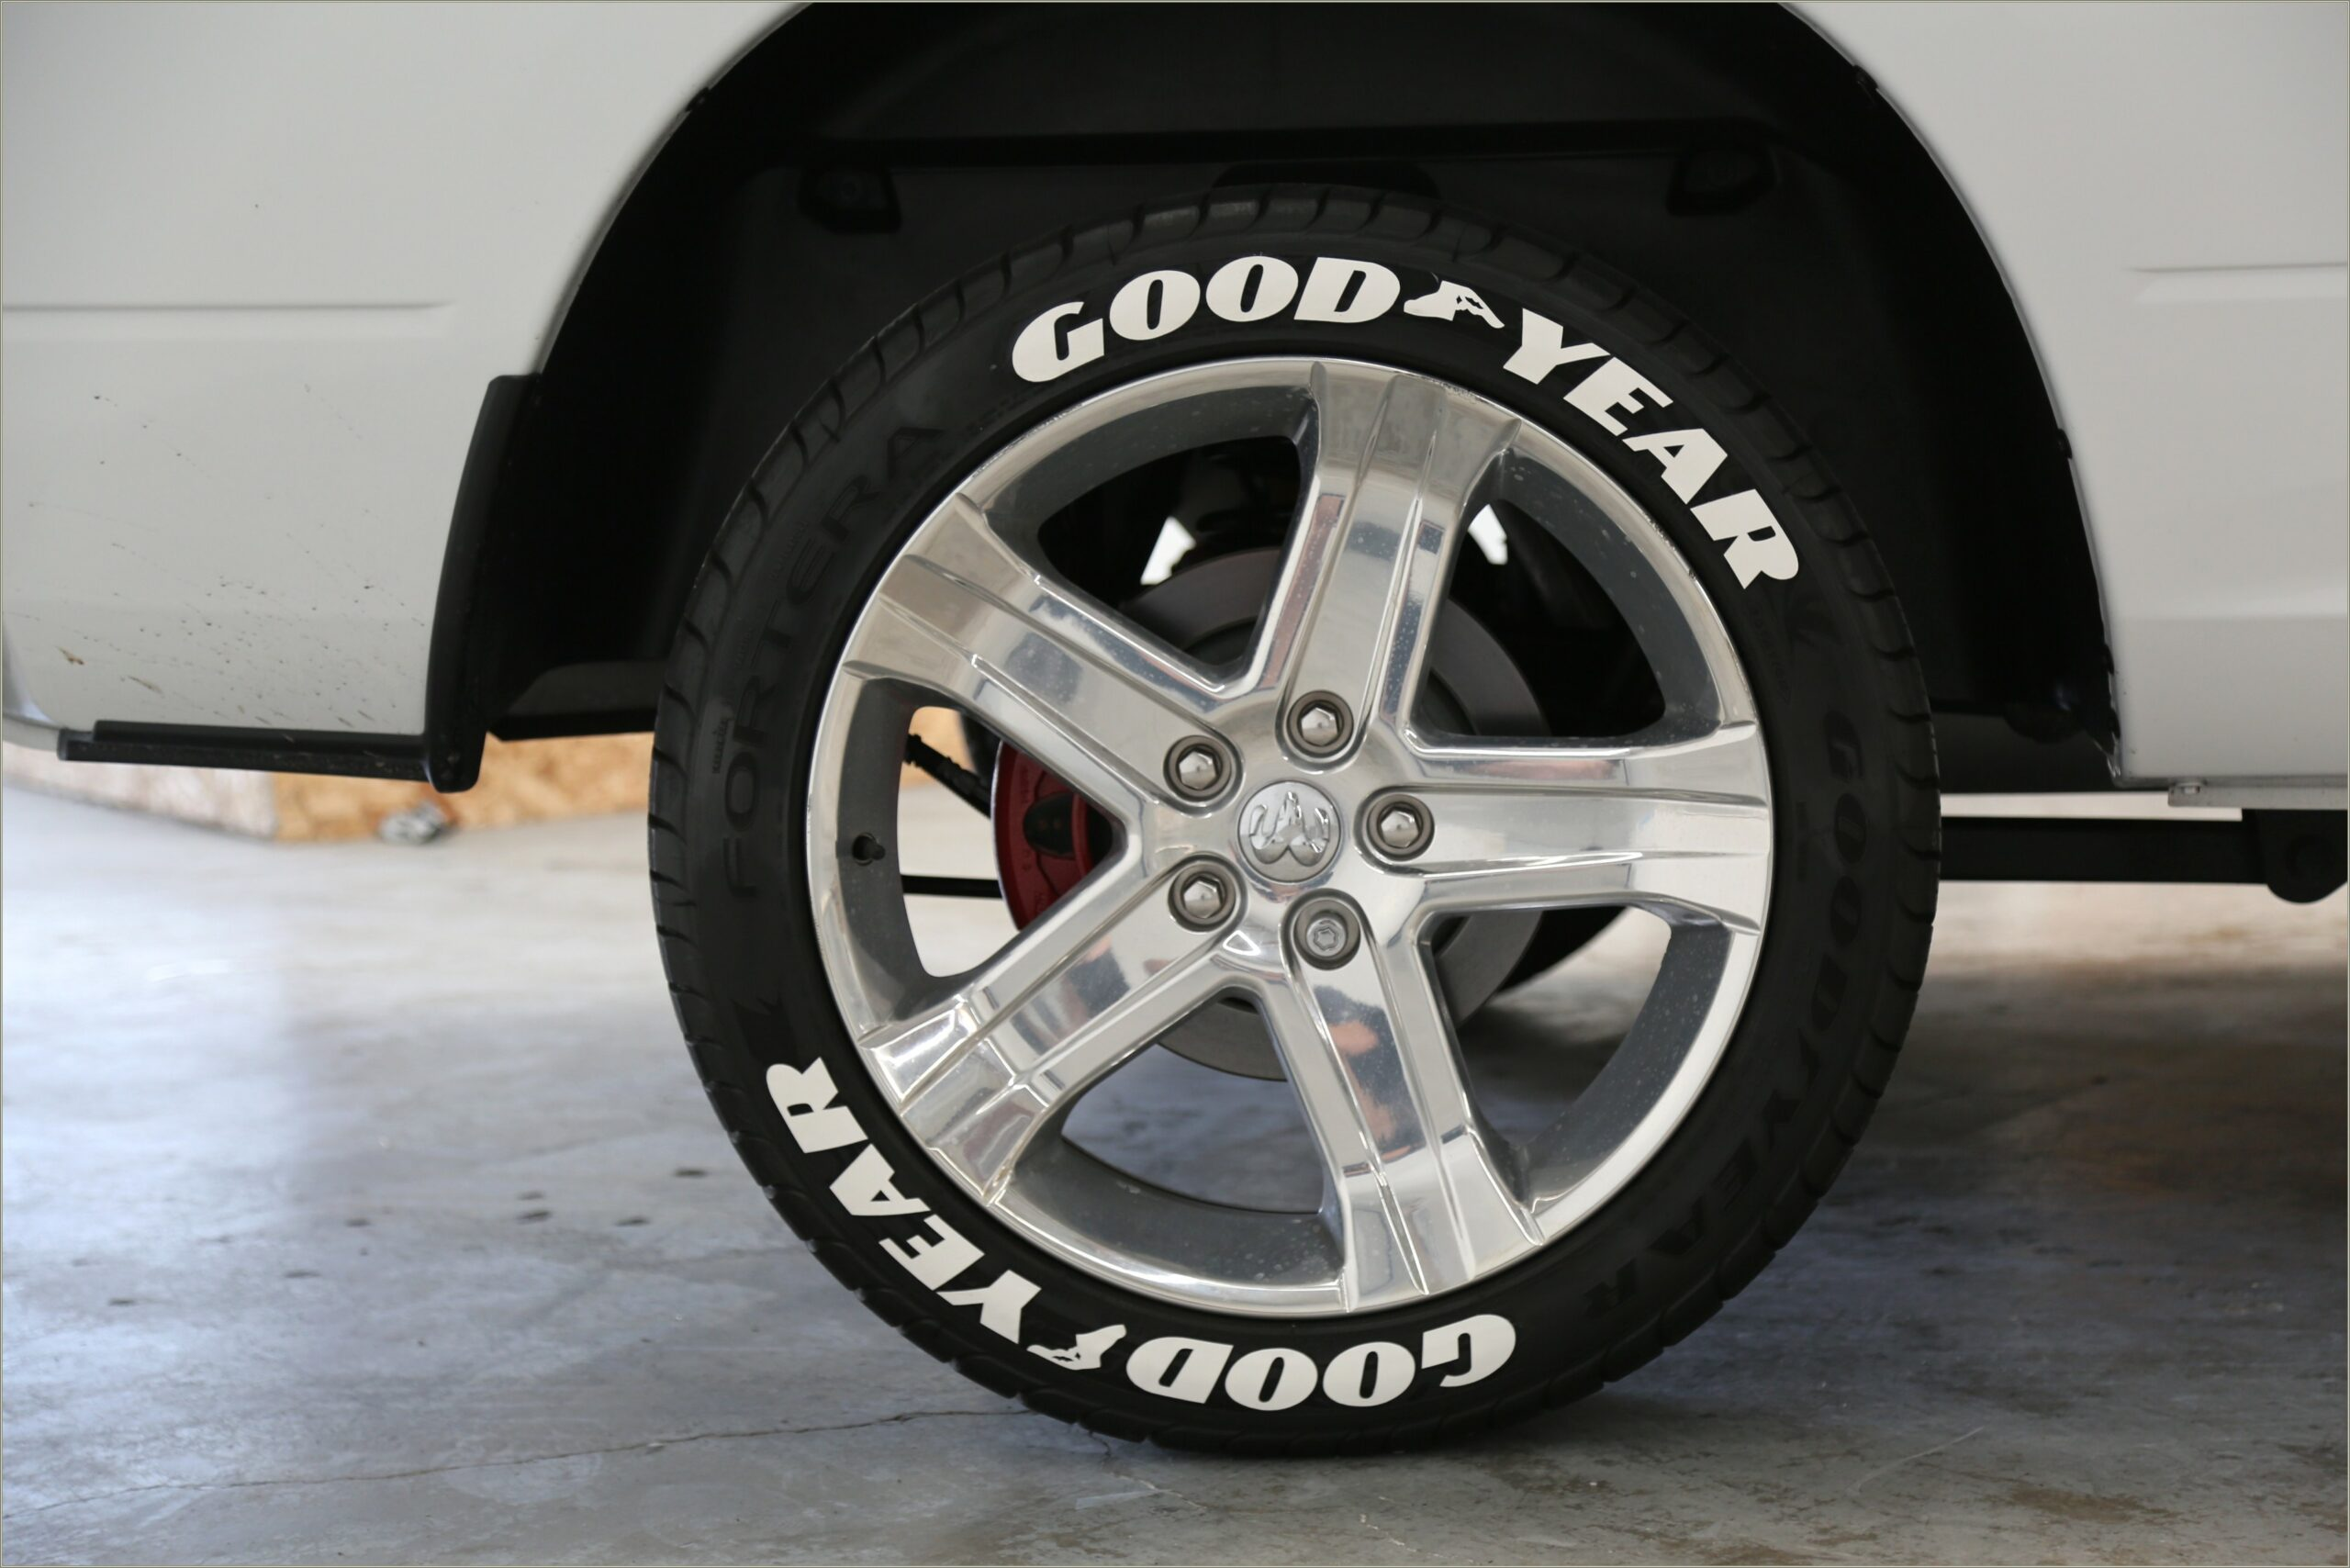 Goodyear White Letter Tires For Sale